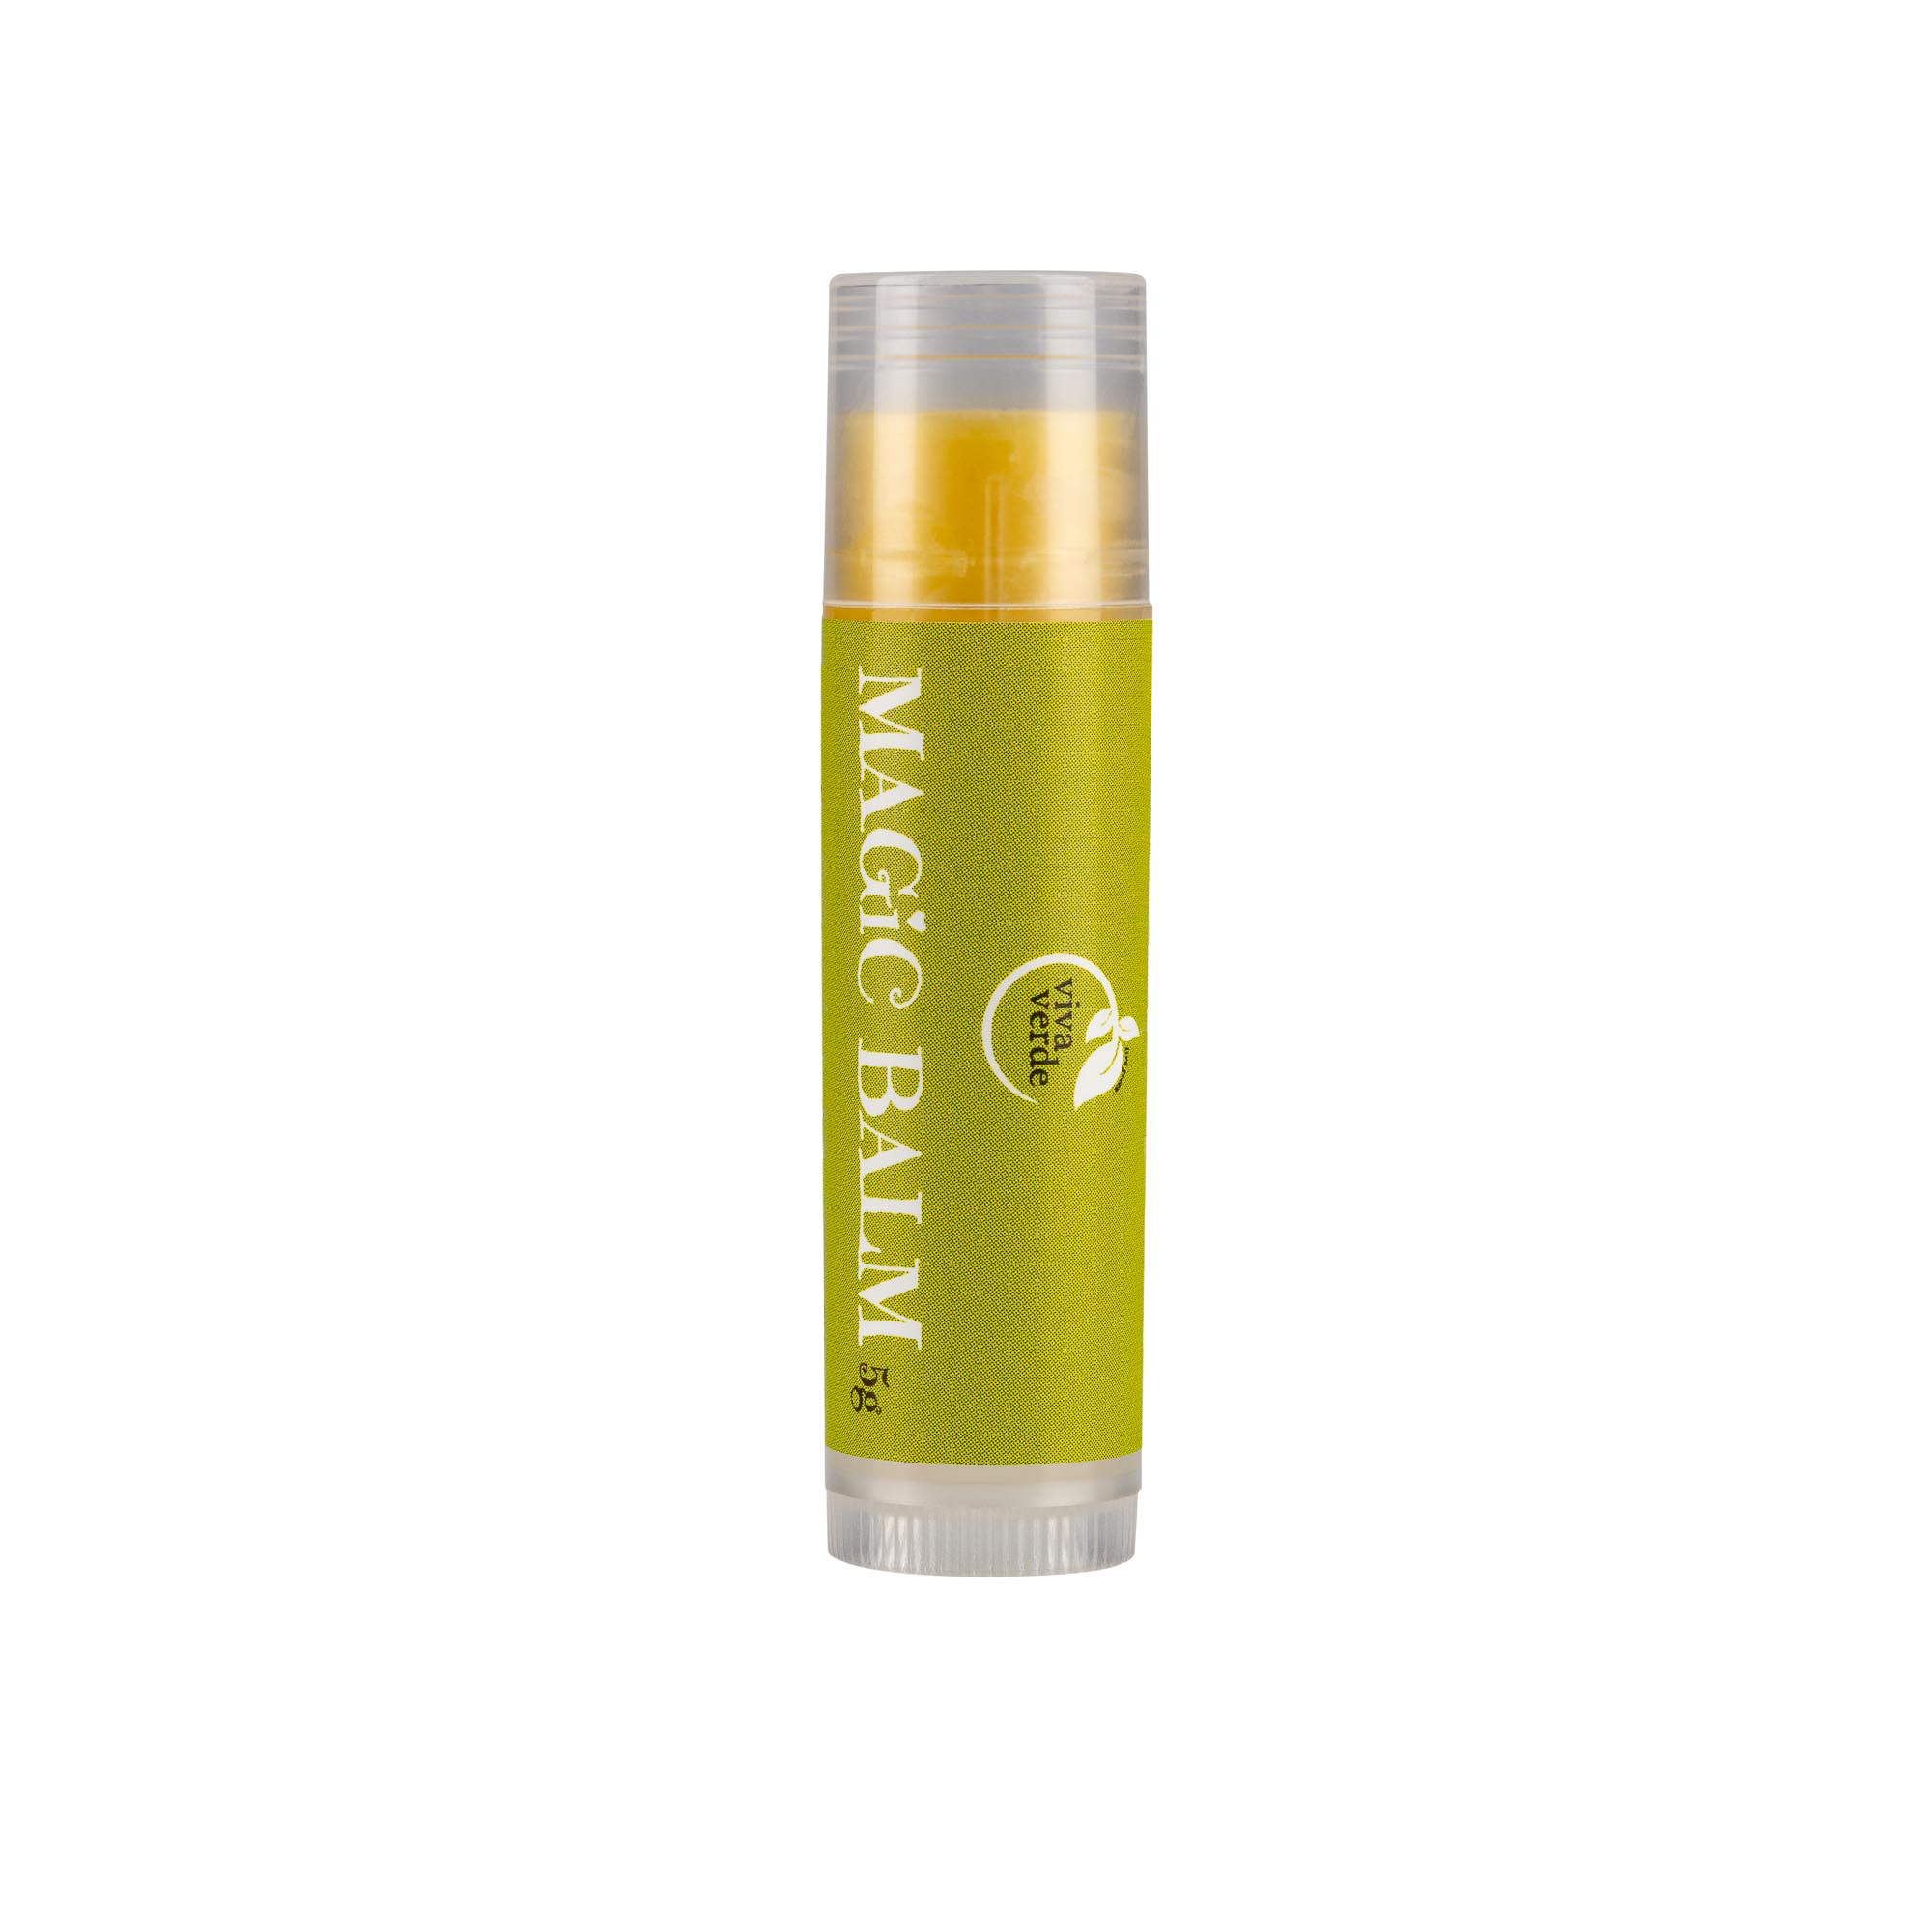 Mangrove Magic Balm 5 g